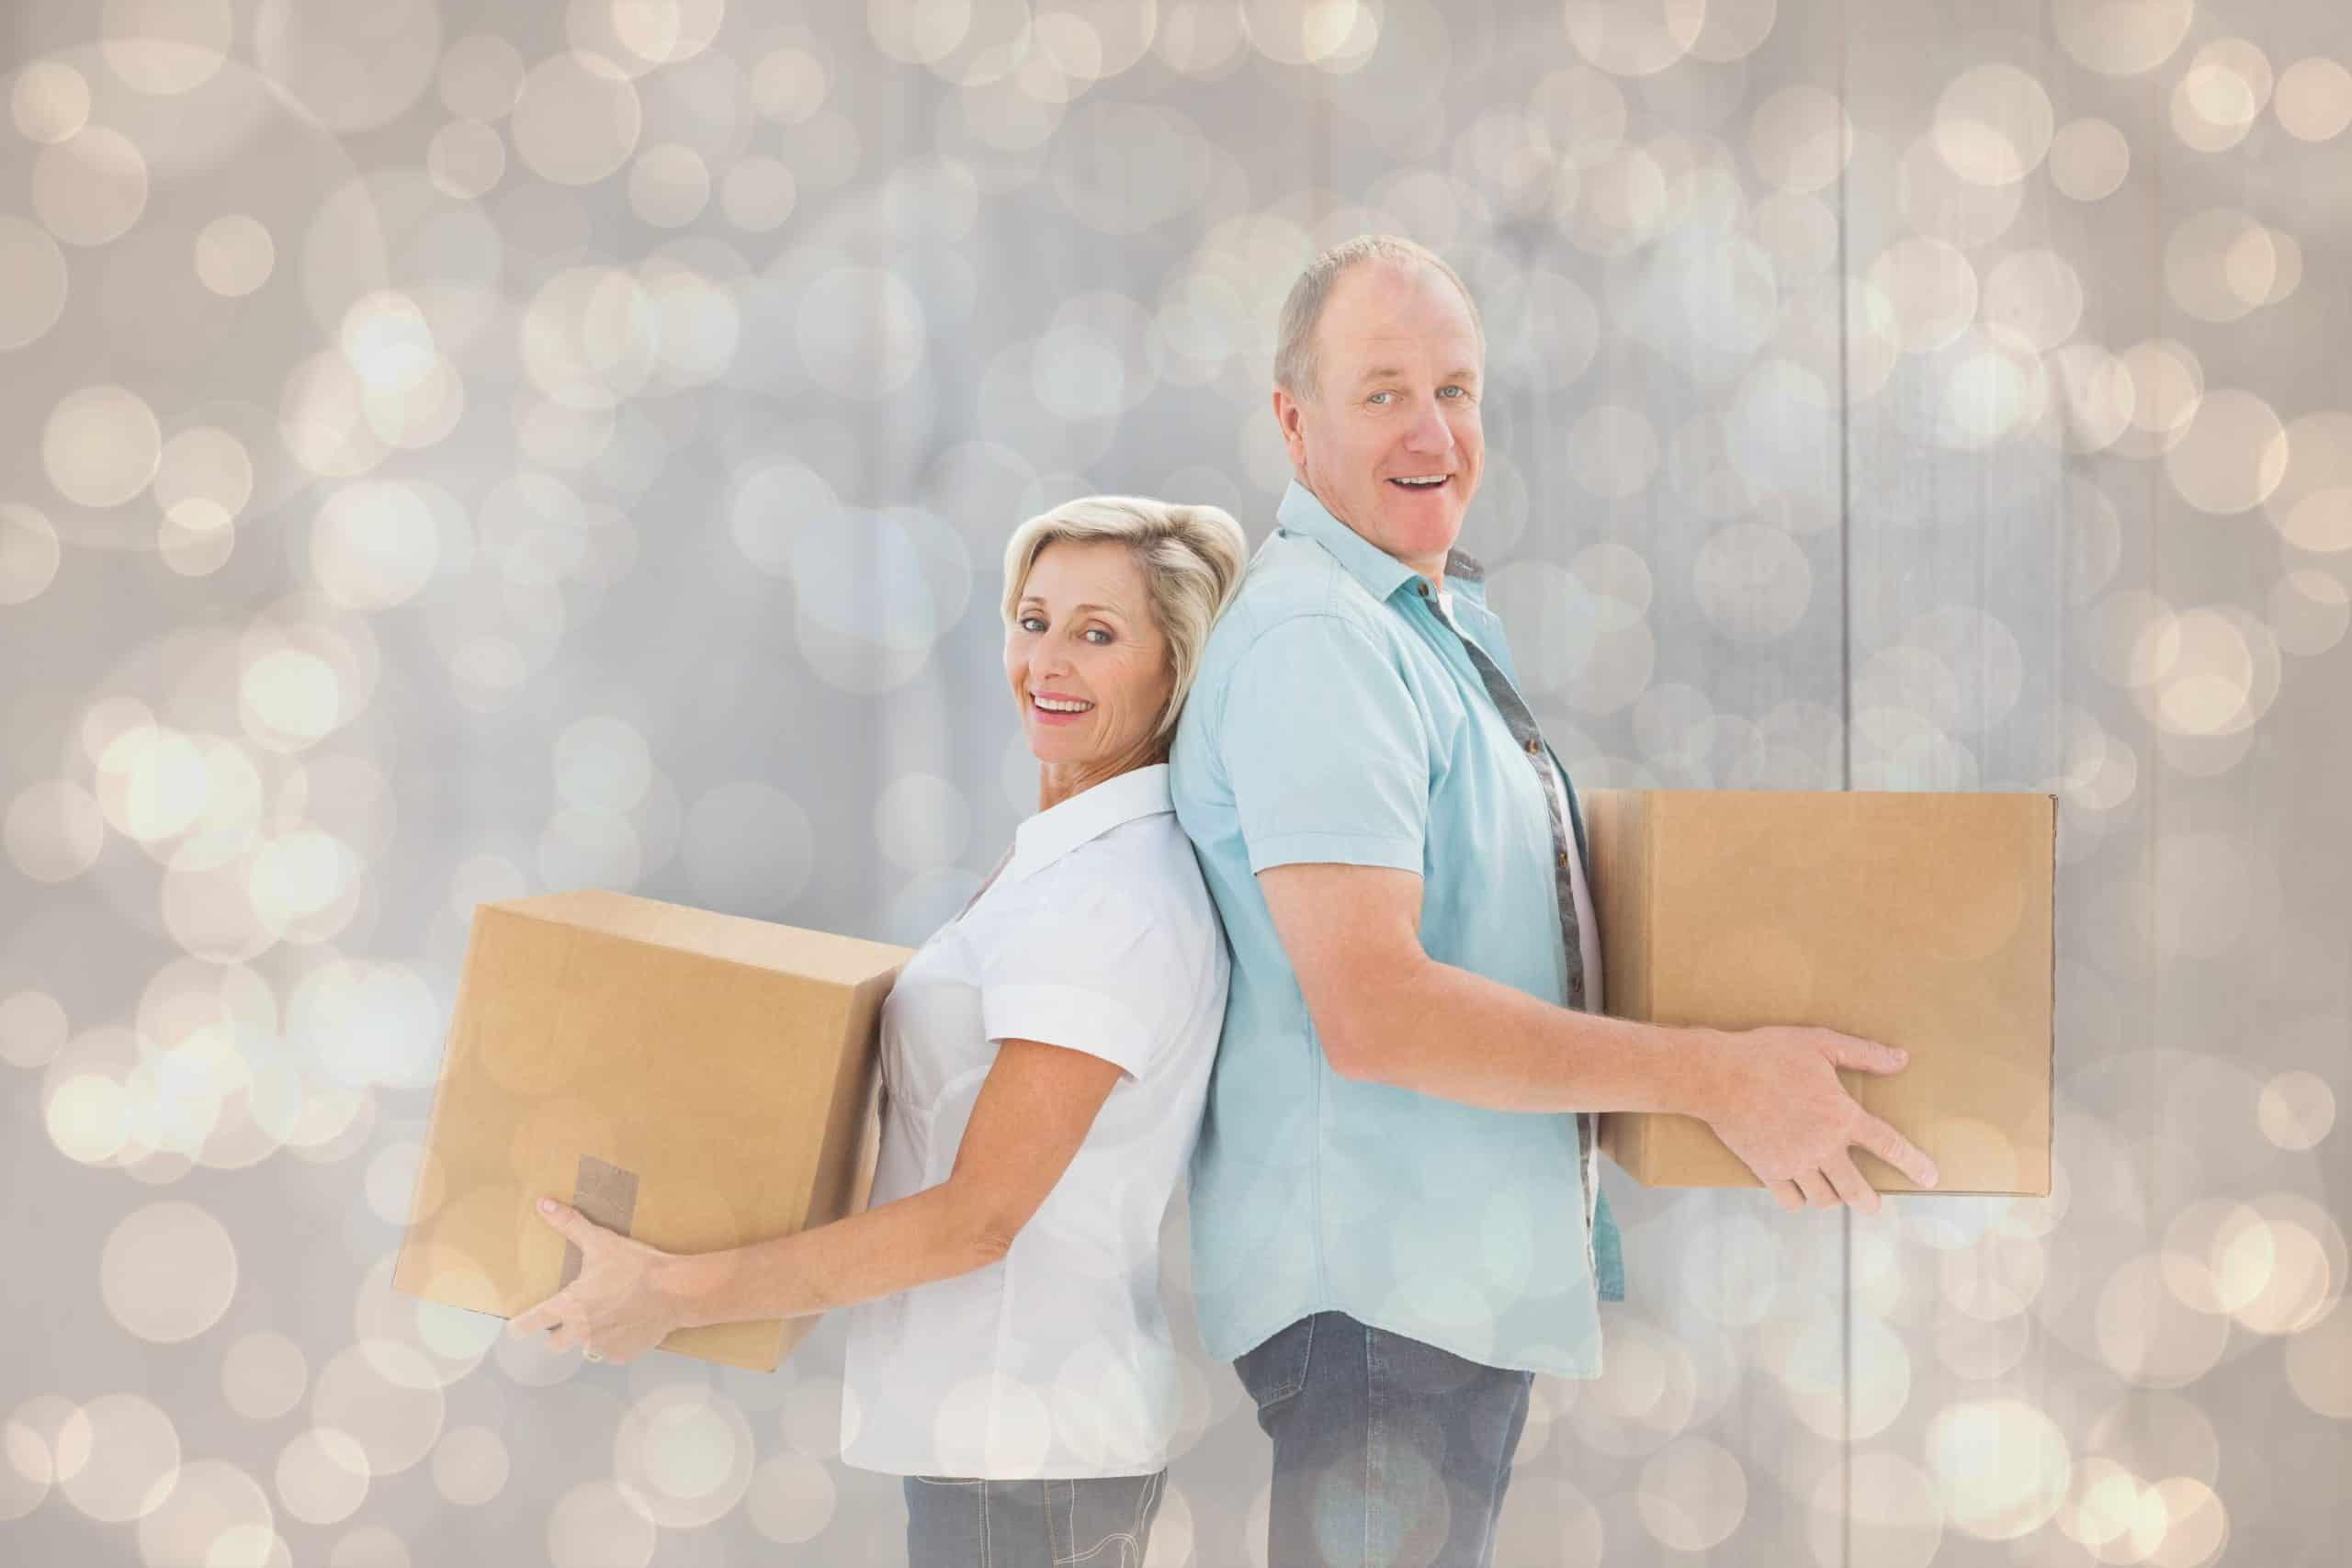 Declutter your home - Happy older couple holding moving boxes against light glowing dots design pattern